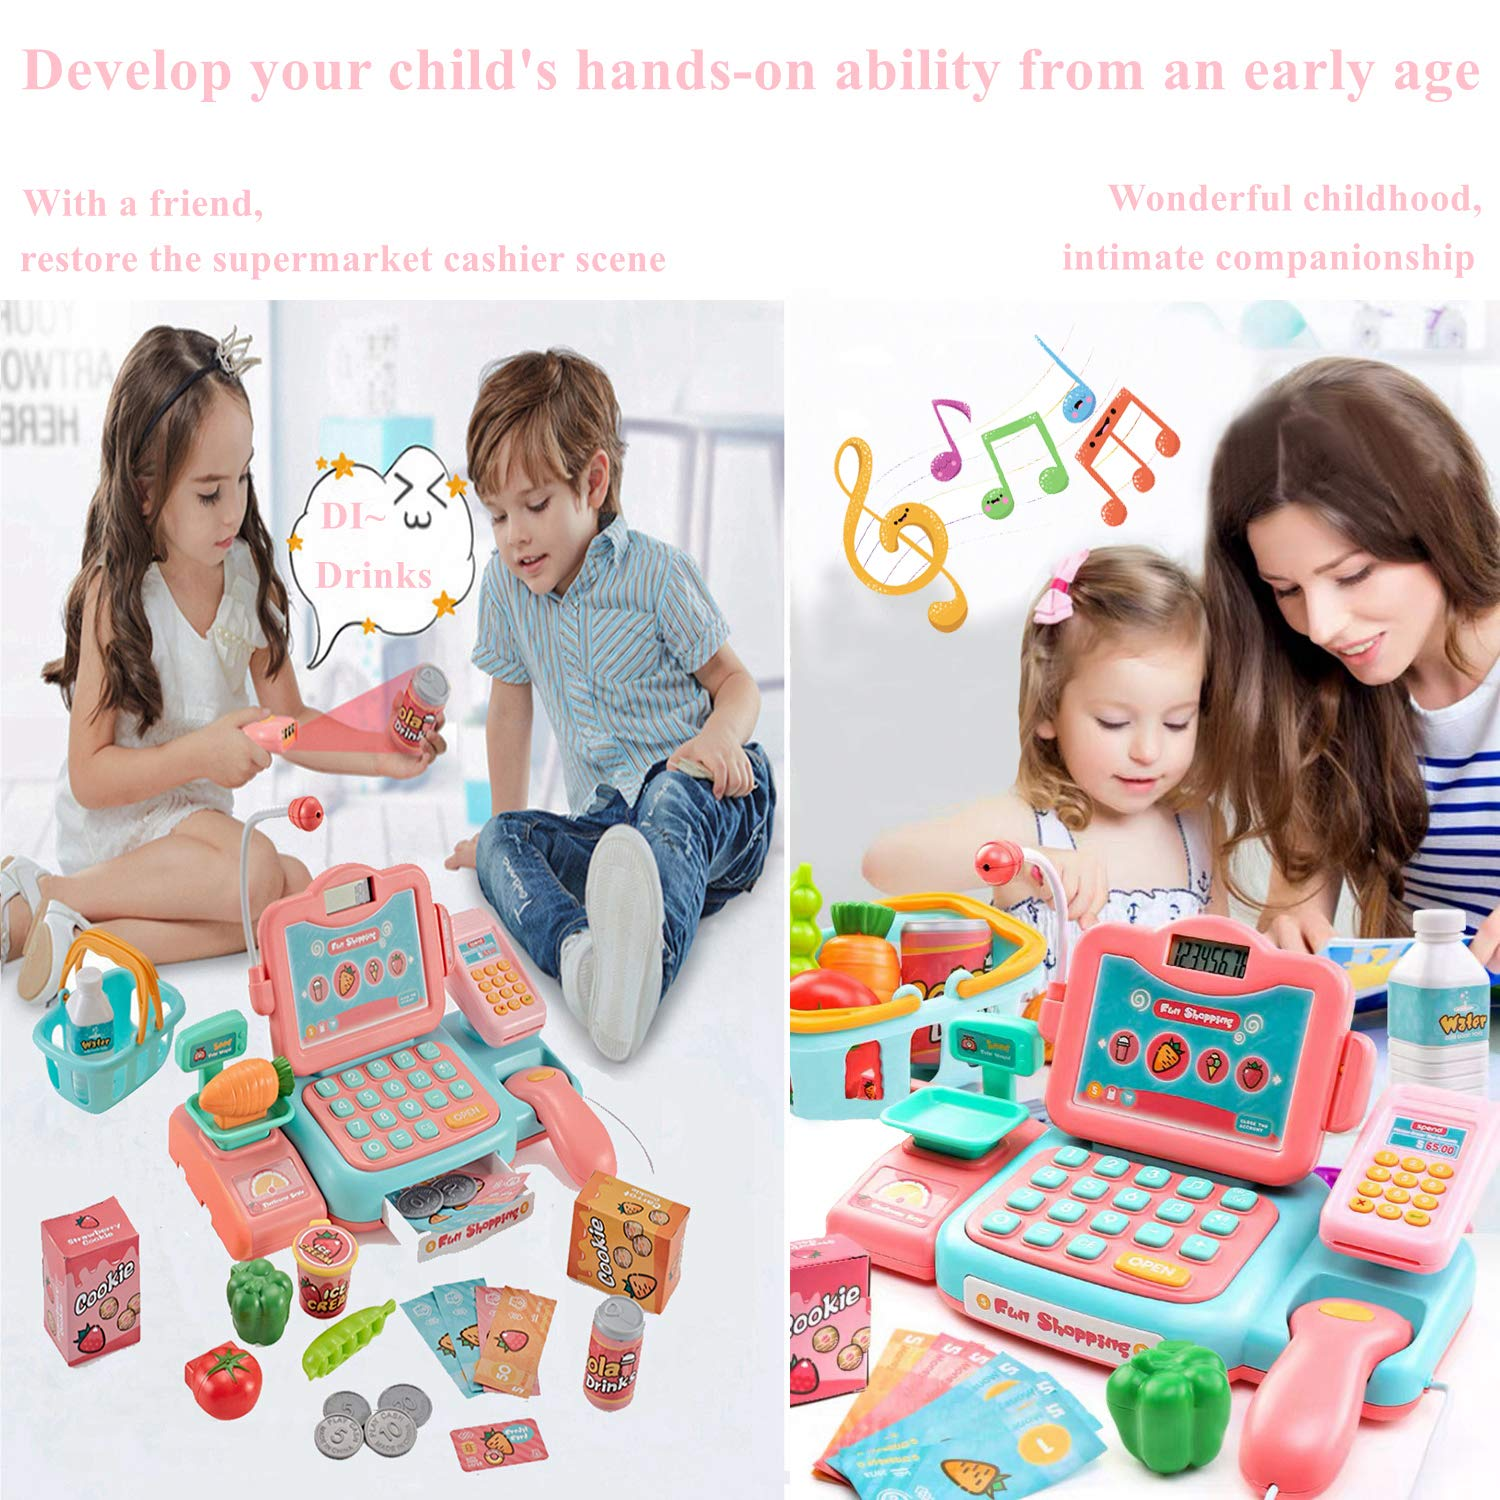 YYoomi Pretend Play Educational Cash Register Toy Classic Counting Toy with Microphone/ Calculator/ Scanner/ Sound/ Music for Kids & Toddlers & Preschoolers by YYoomi (Image #6)